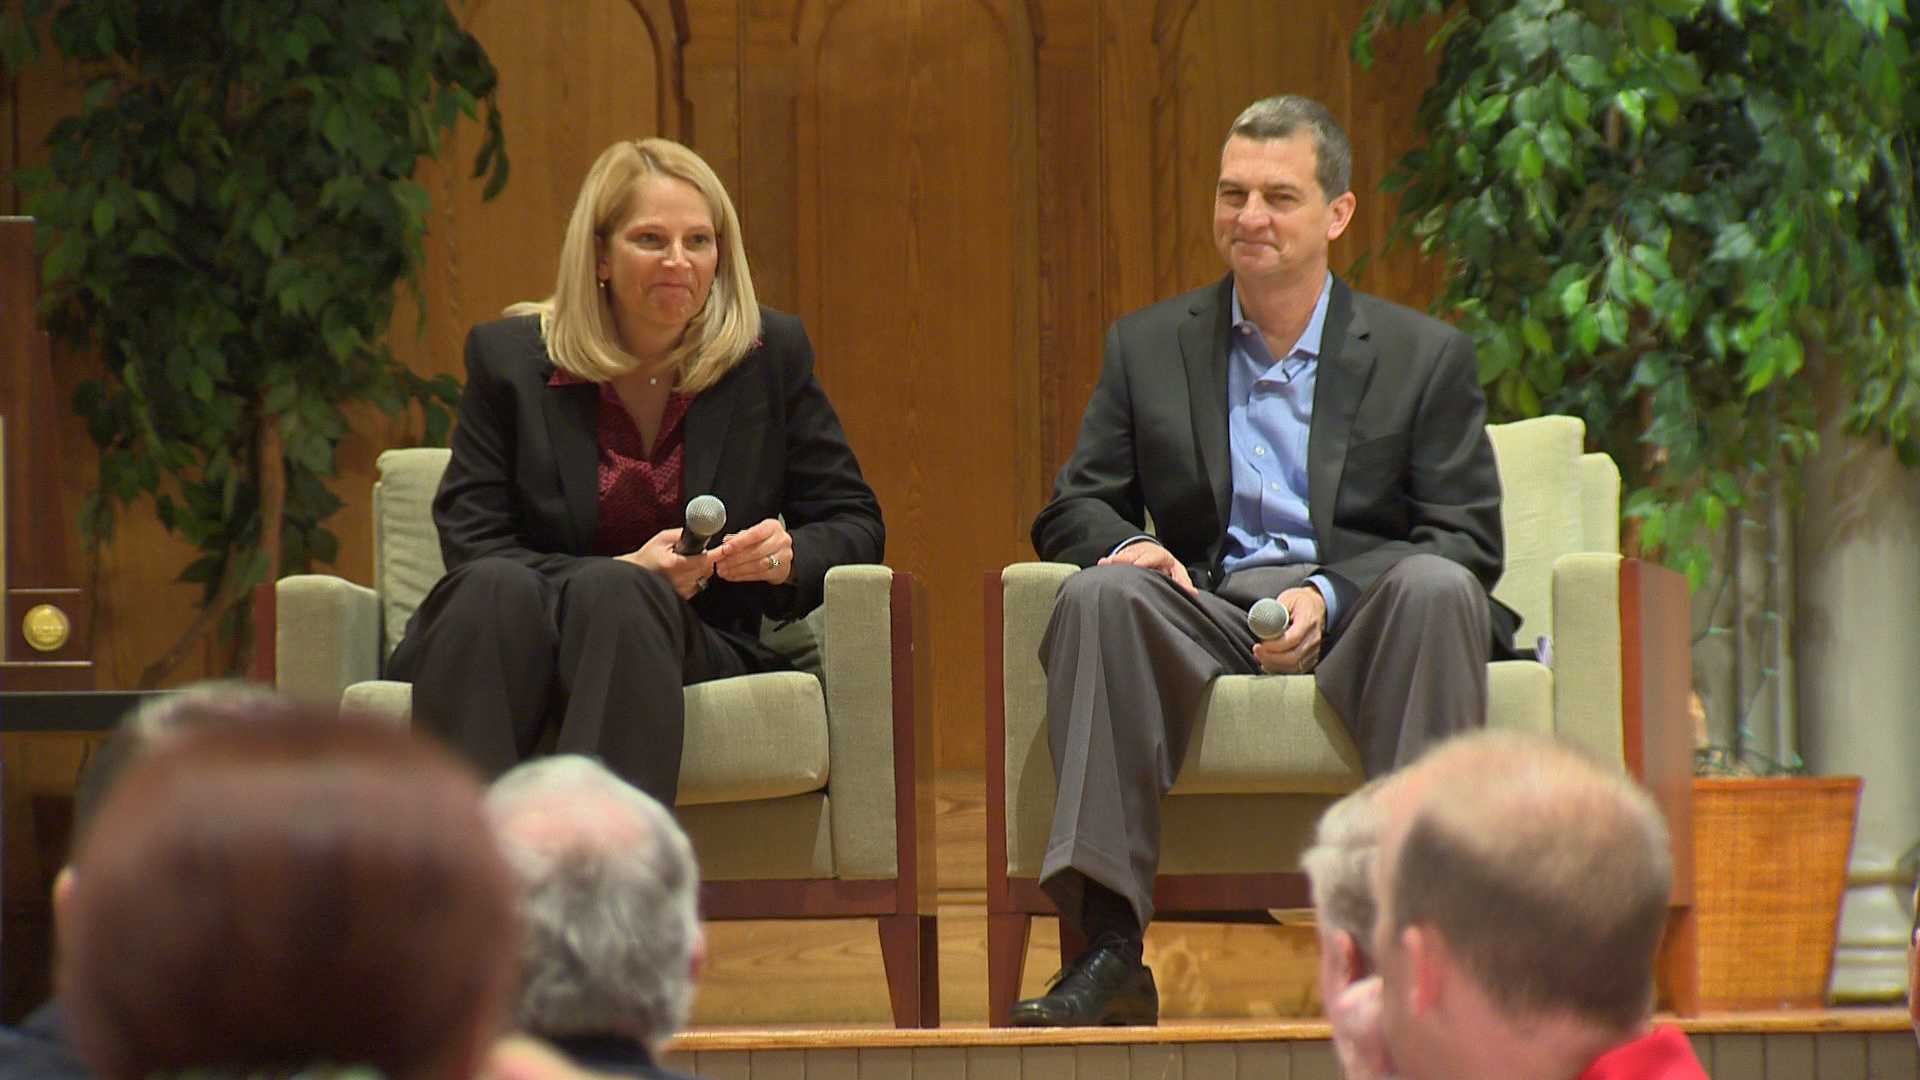 University of Maryland head basketball coaches Brenda Frese and Mark Turgeon talk to a crowd at Westminster Hall in Baltimore.